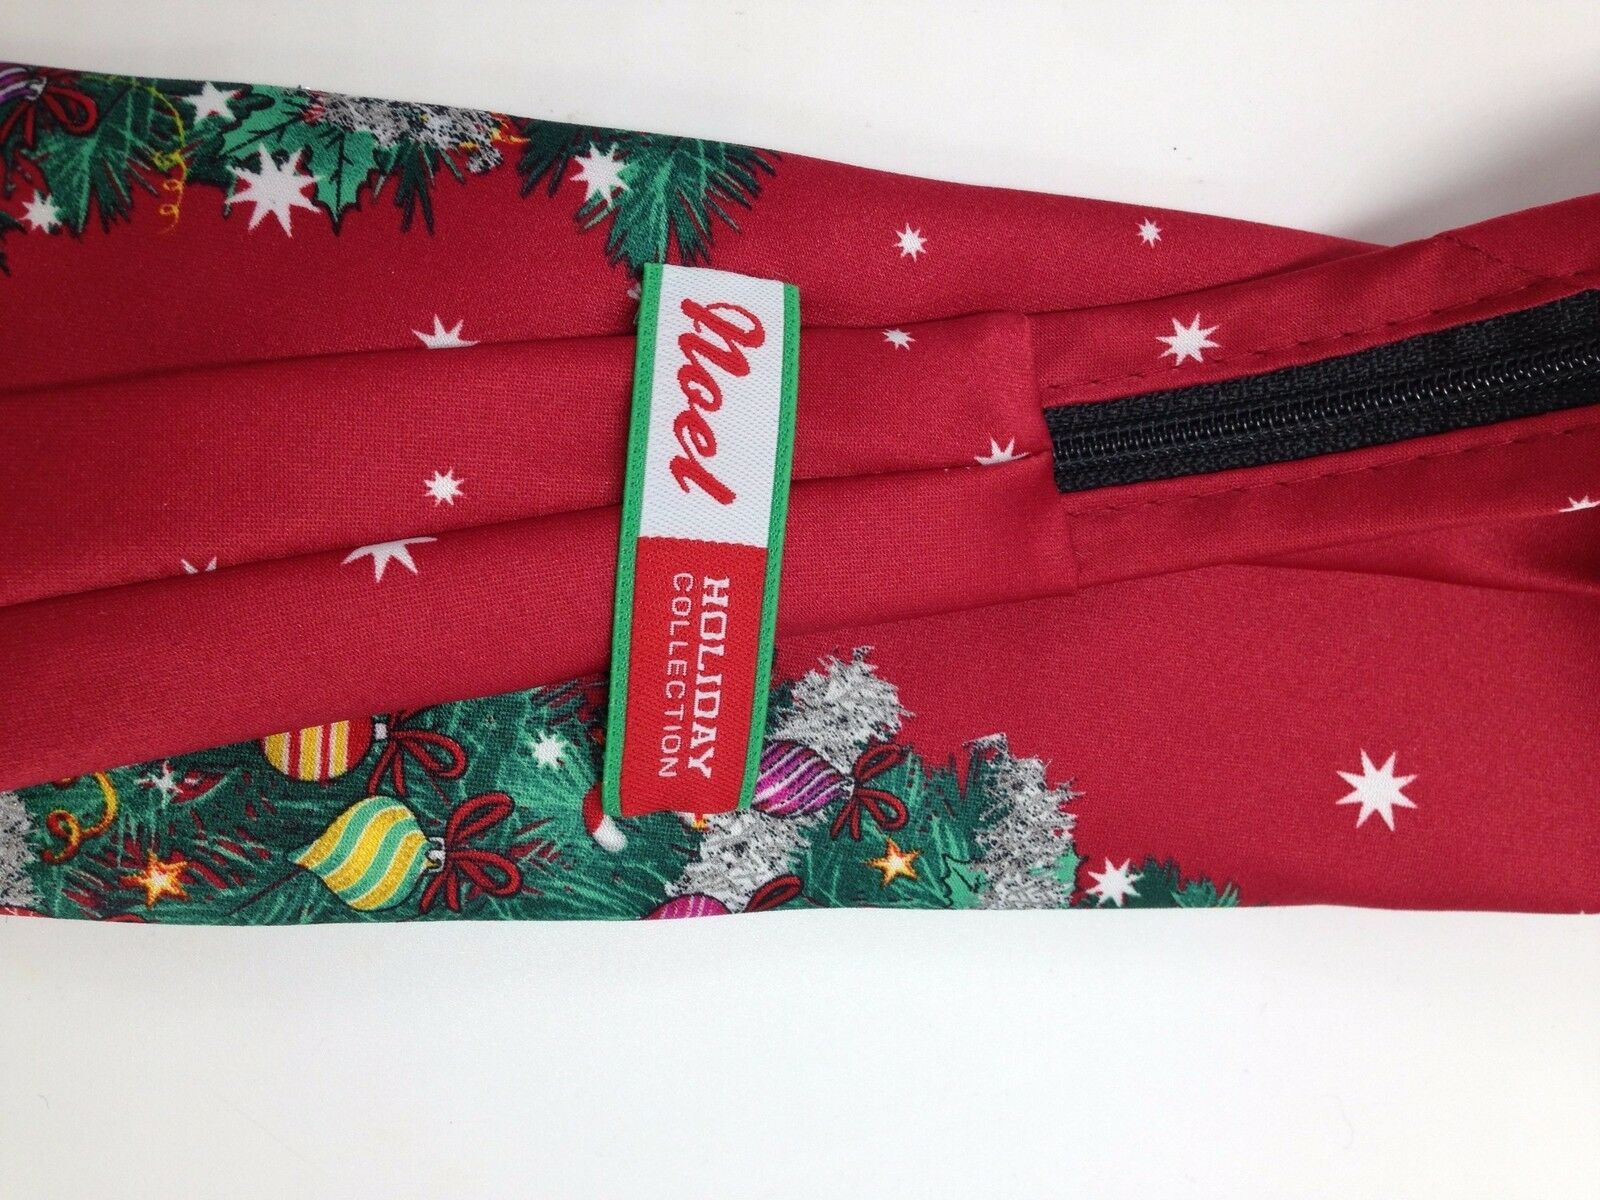 Details about  /NOEL HOLIDAY $49 MENS Black UGLY Christmas Tie Necktie NWT